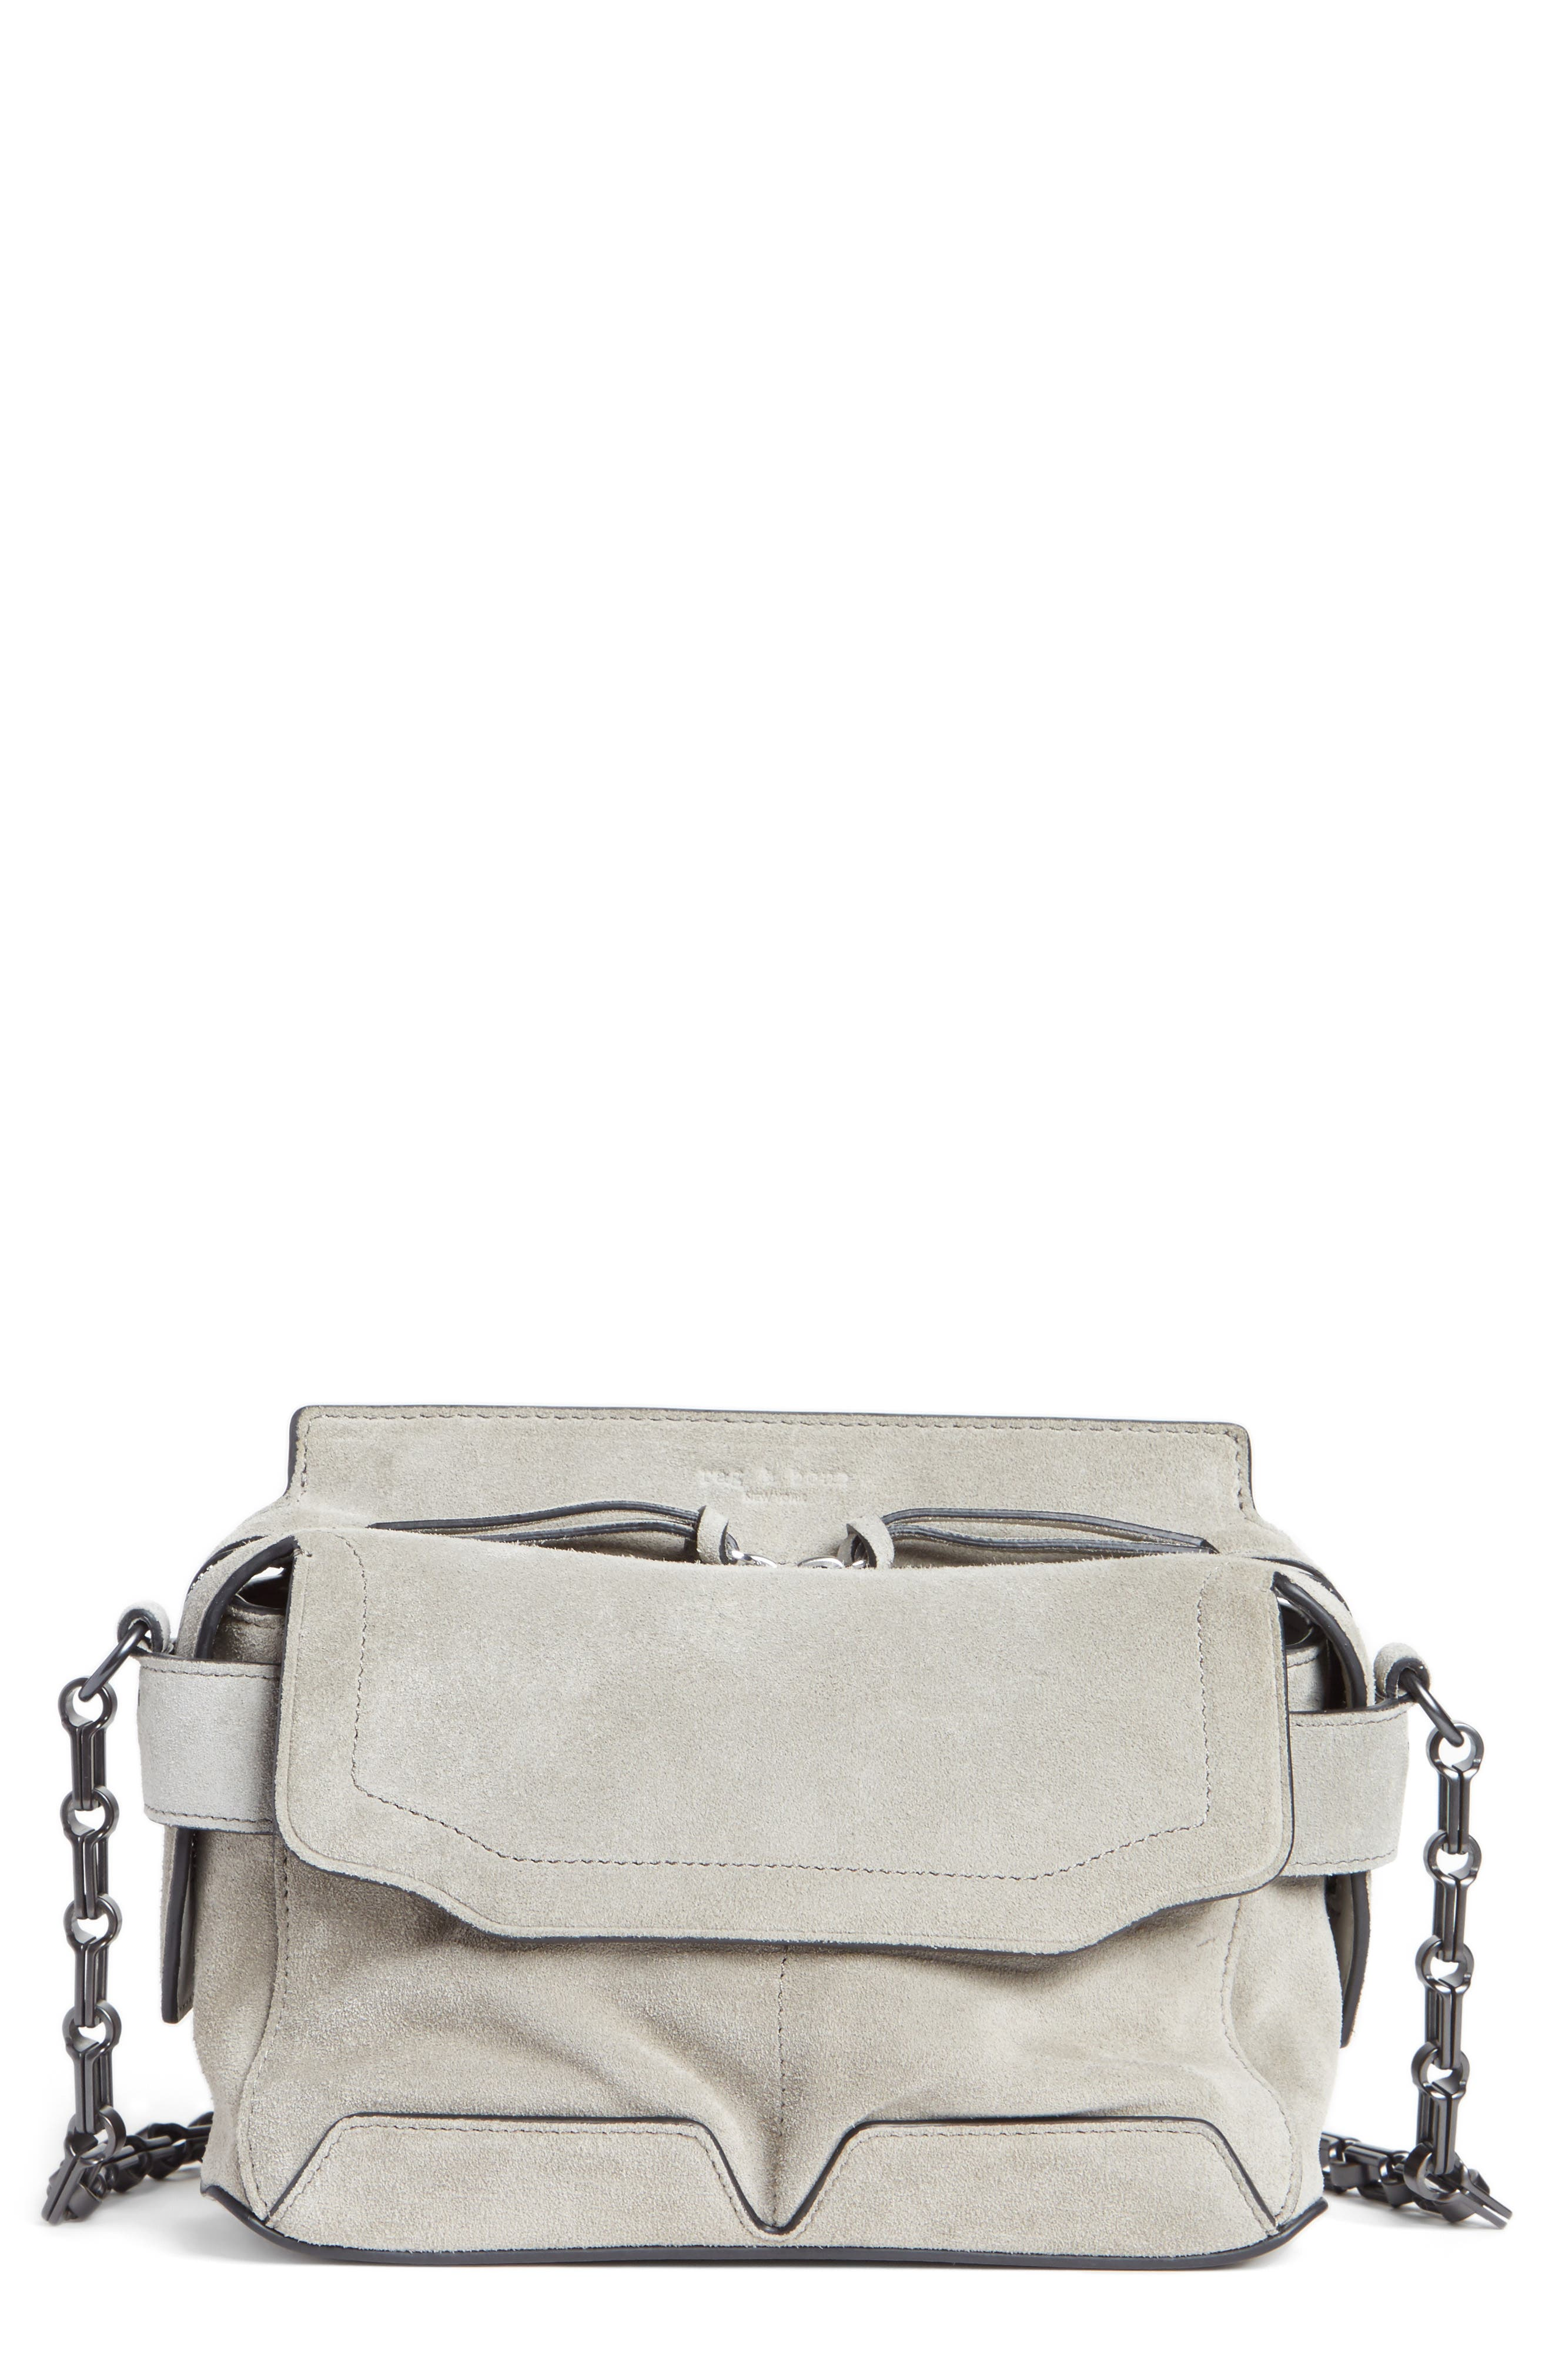 Alternate Image 1 Selected - rag & bone Micro Pilot Suede & Leather Satchel